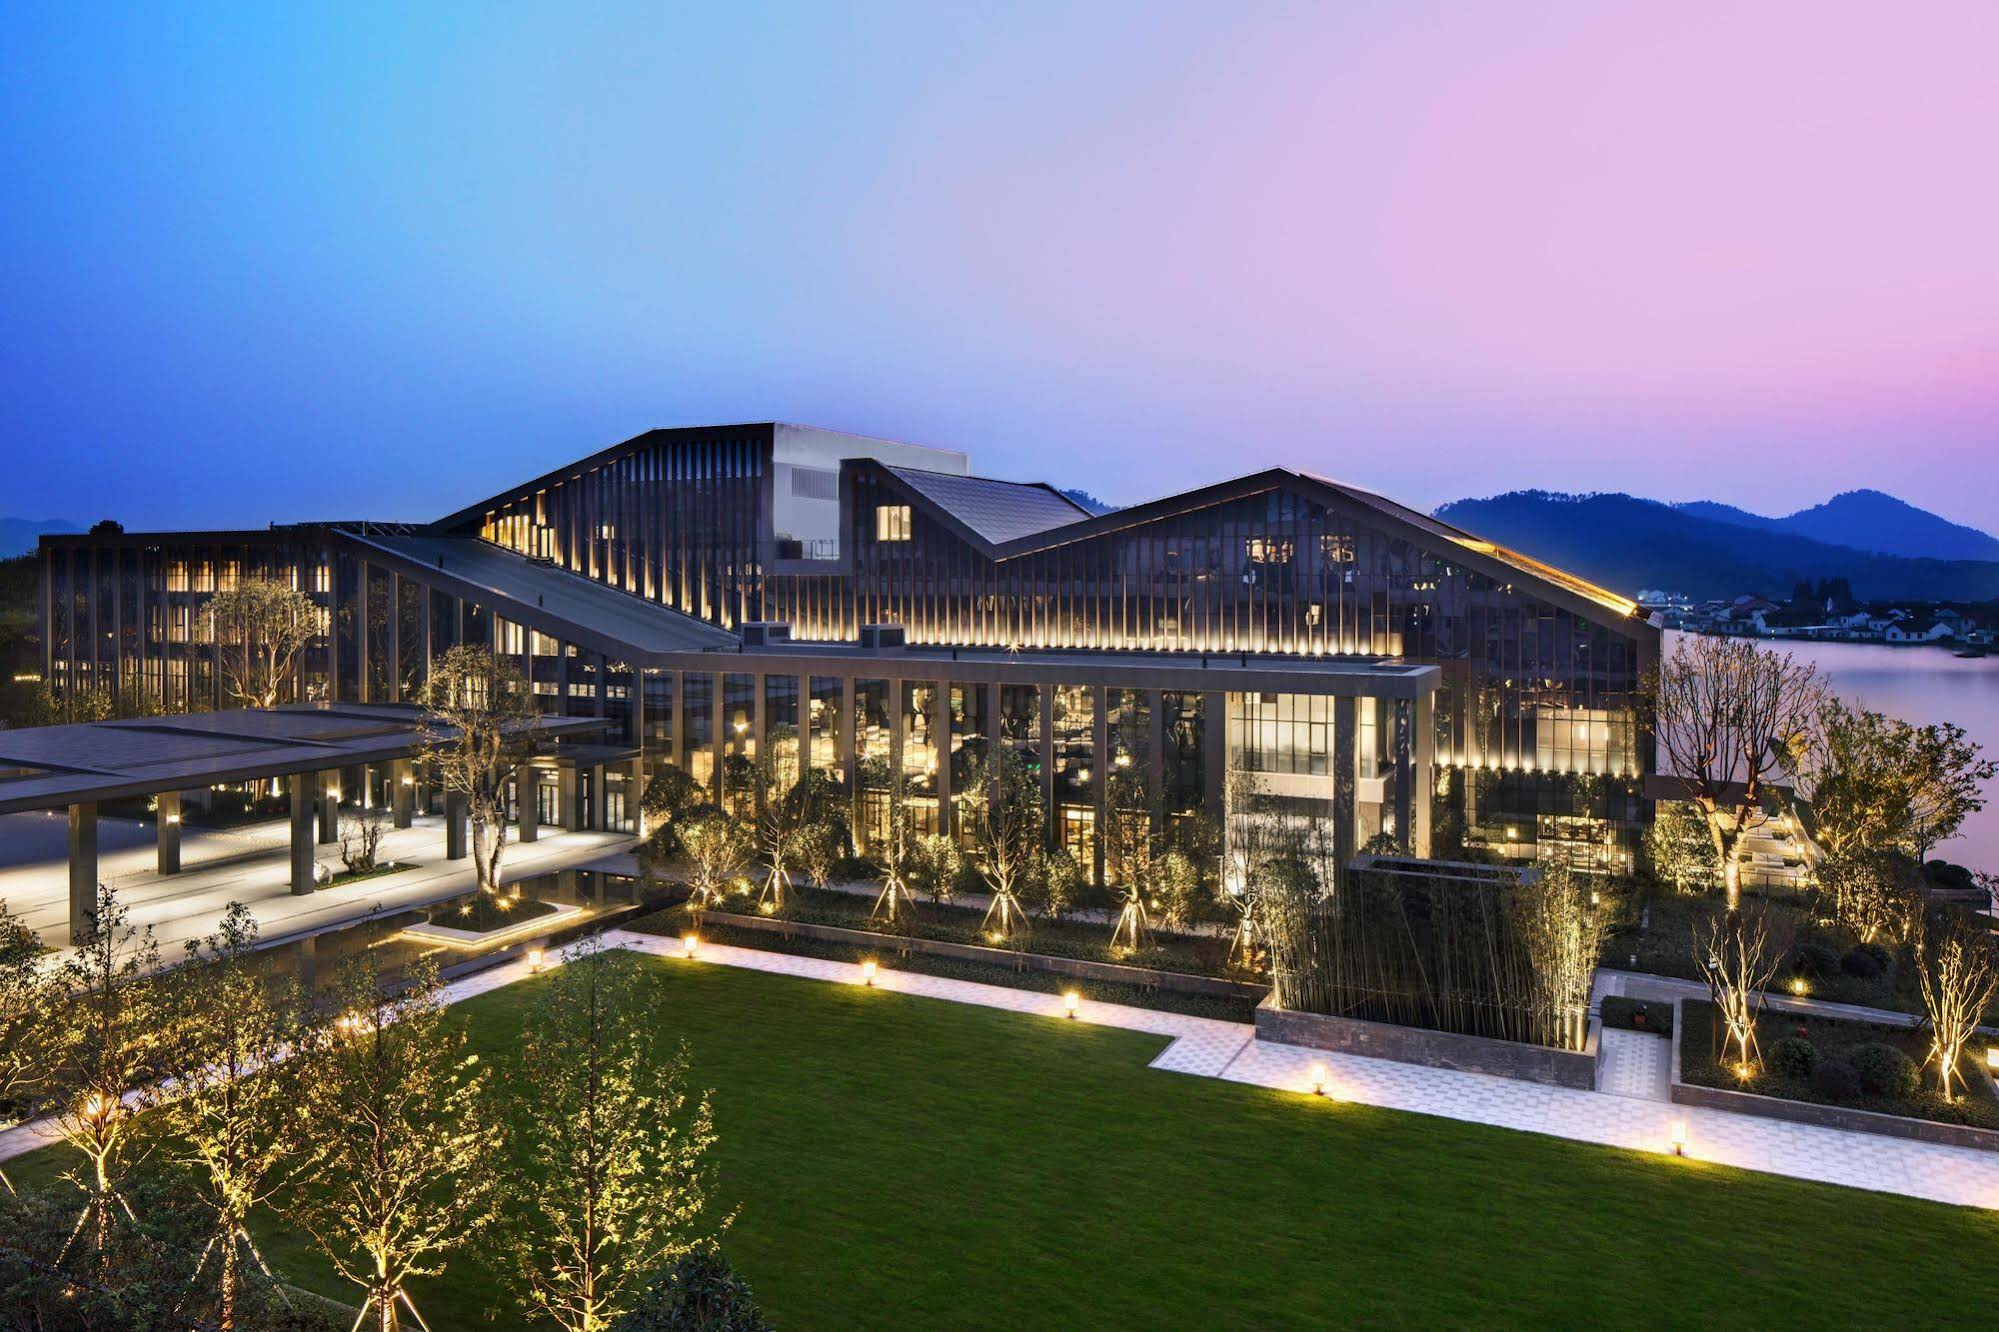 Hilton Ningbo Dongqian Lake Resort